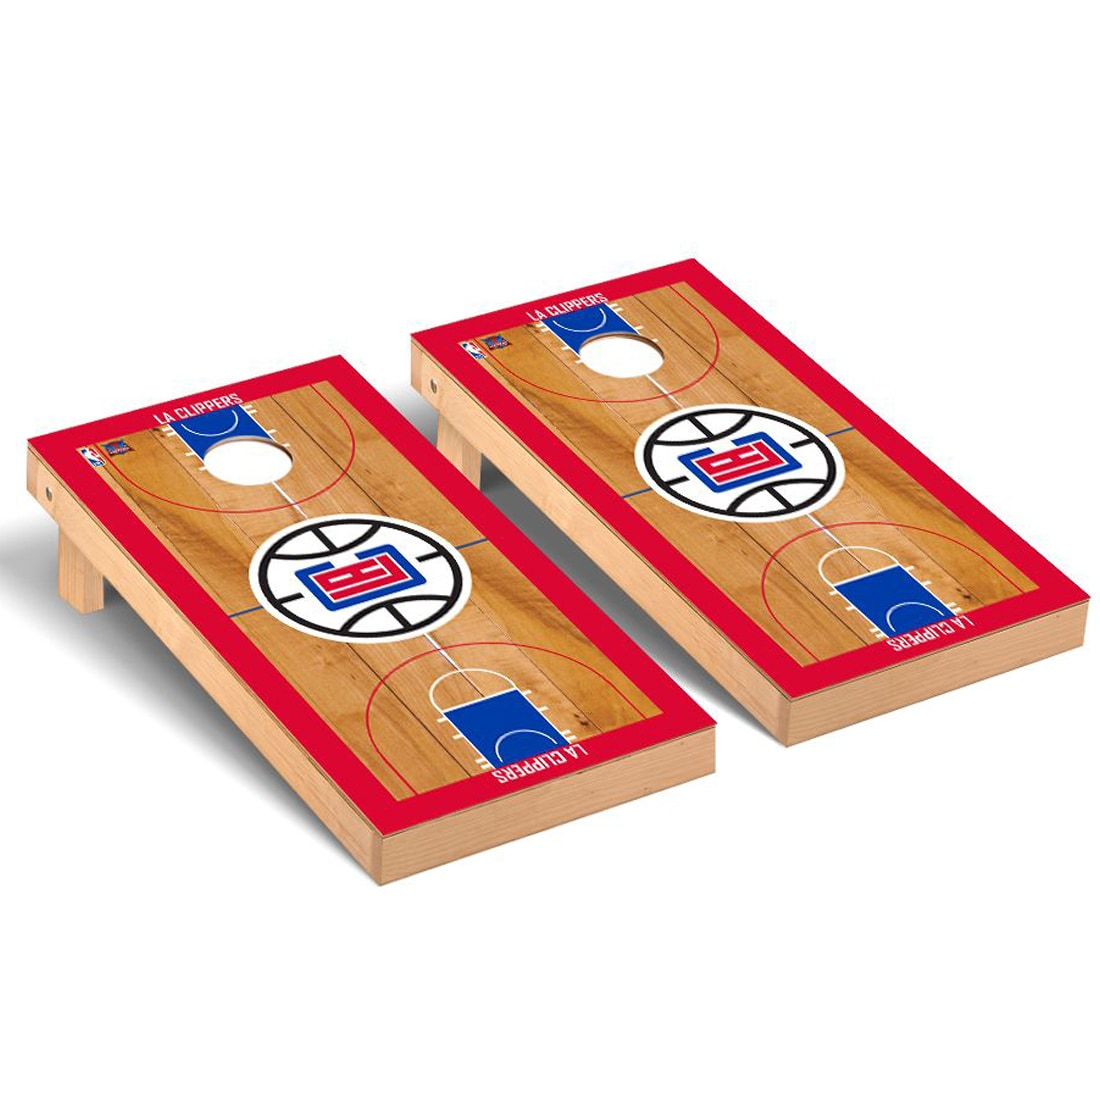 LA Clippers 2' x 4' Court Cornhole Game Set